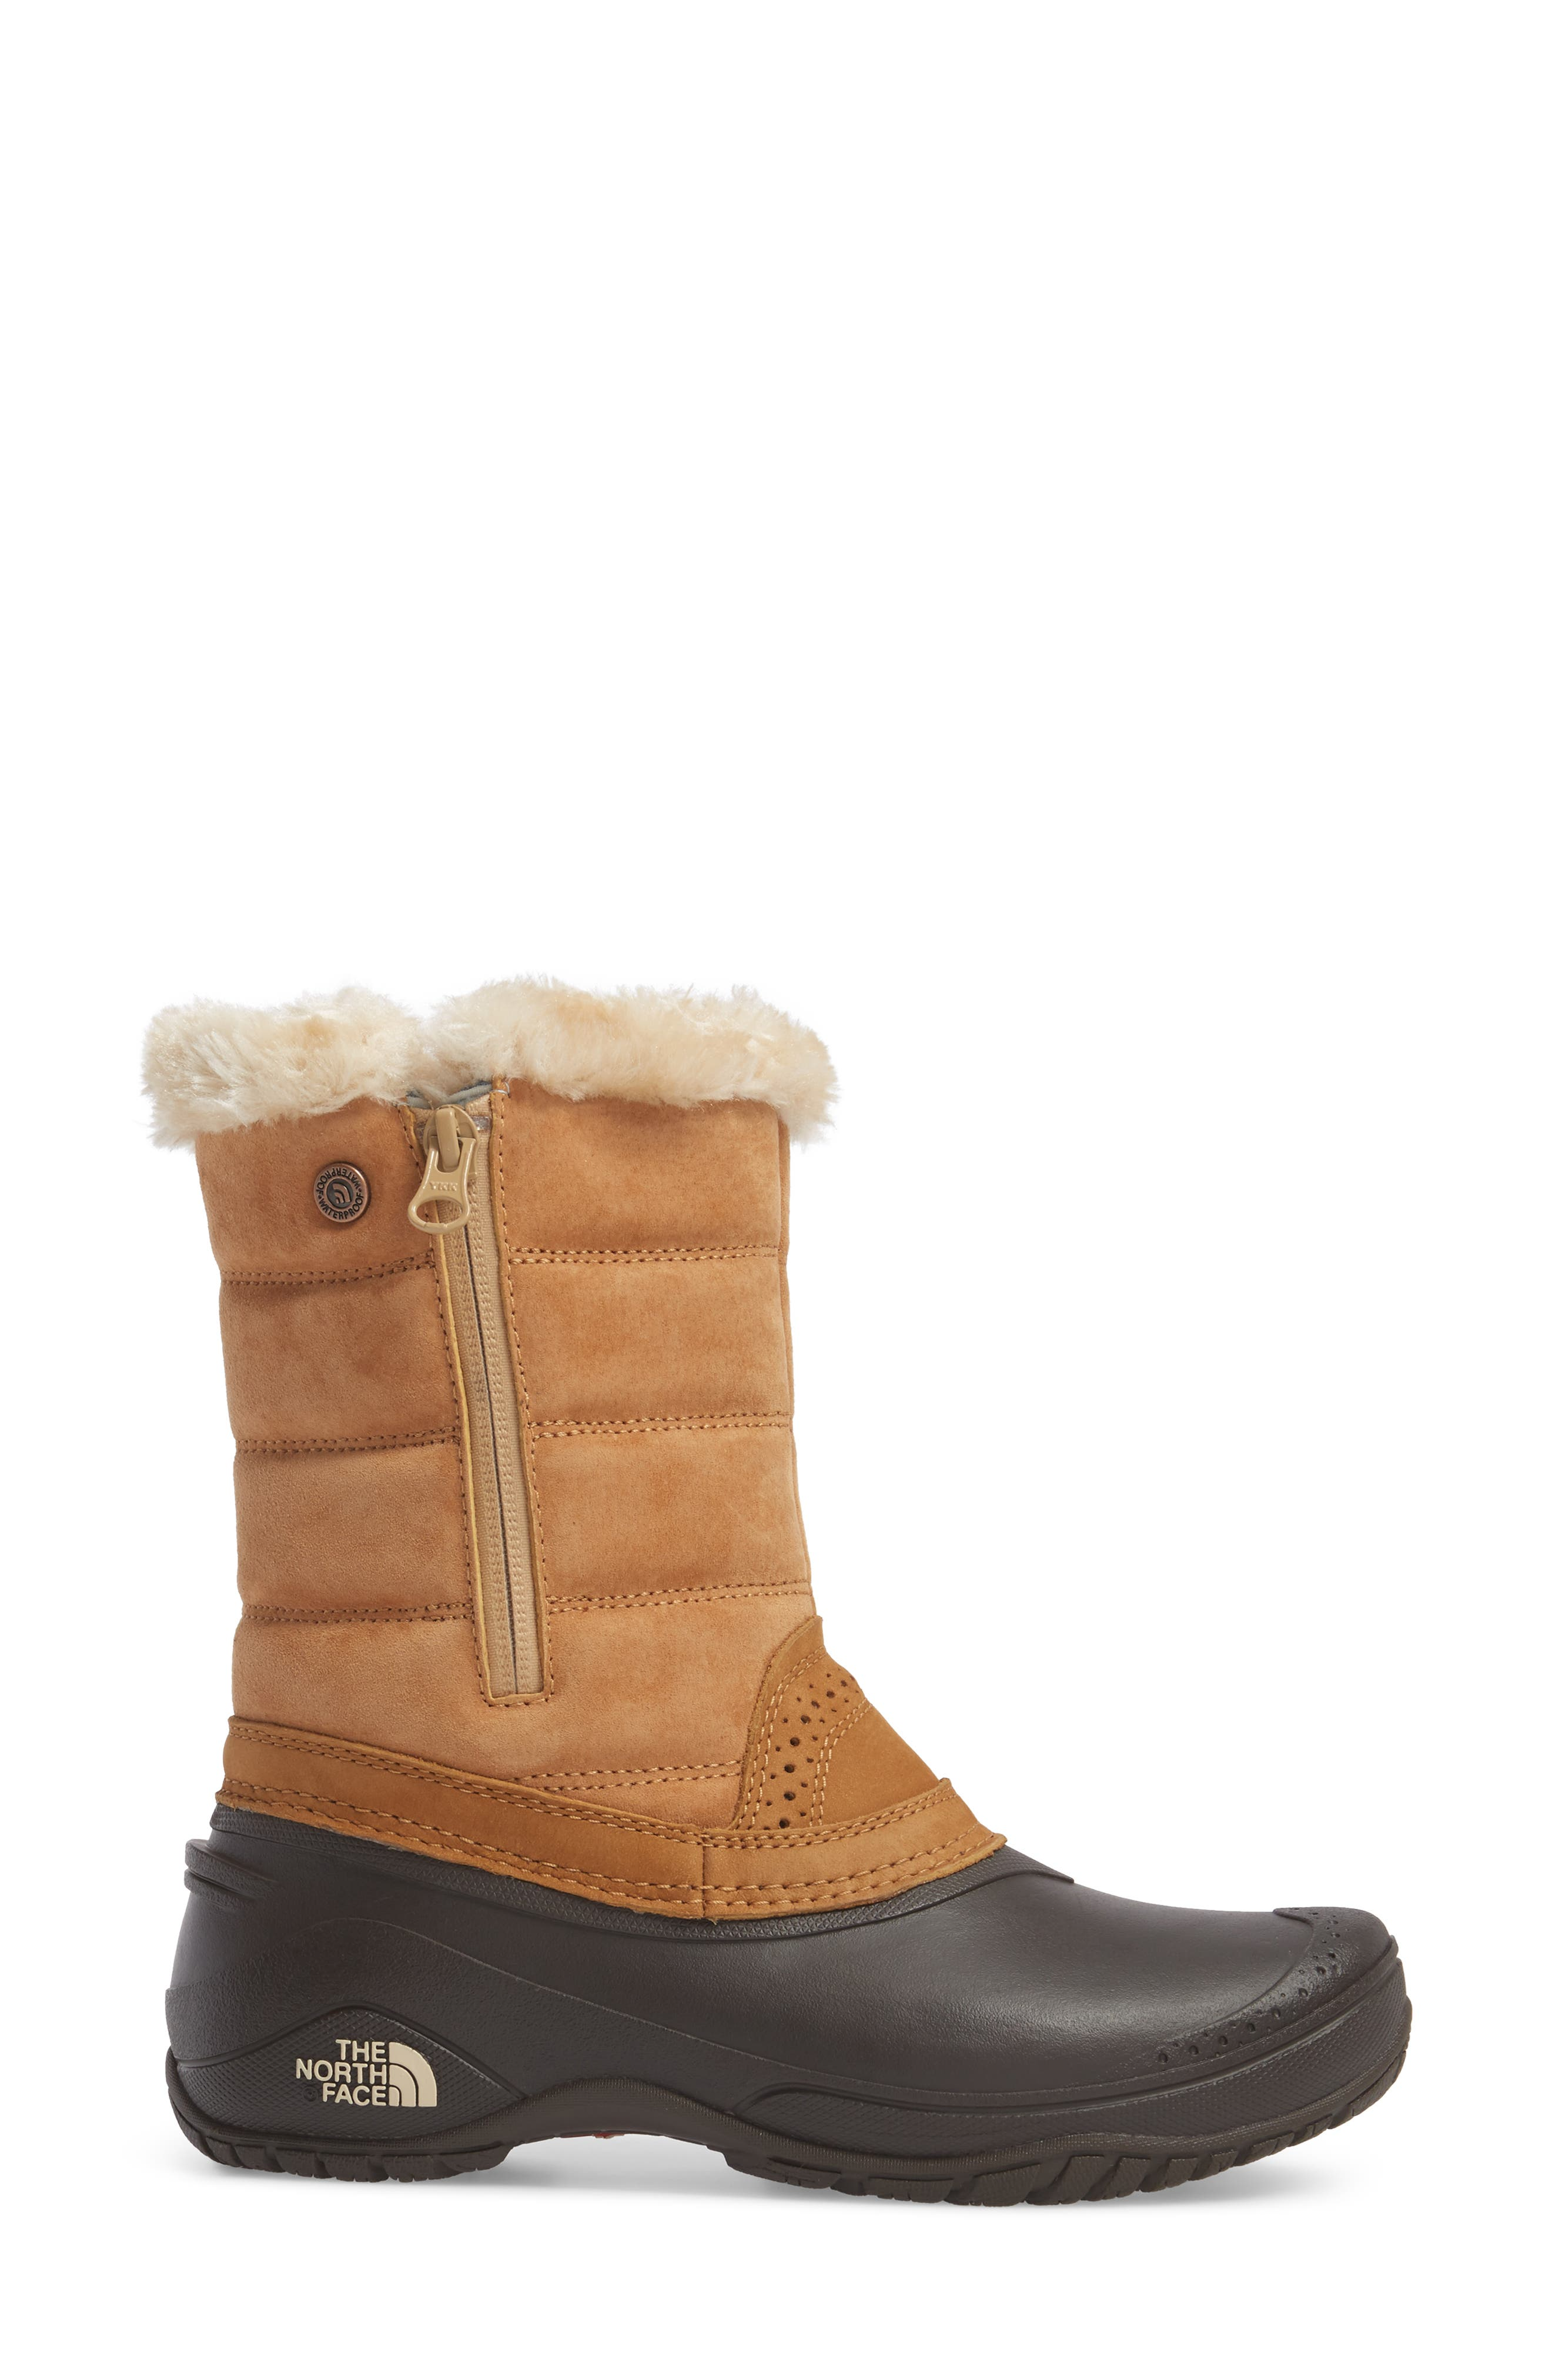 Alternate Image 3  - The North Face Shellista III Waterproof Pull-On Snow Boot (Women)